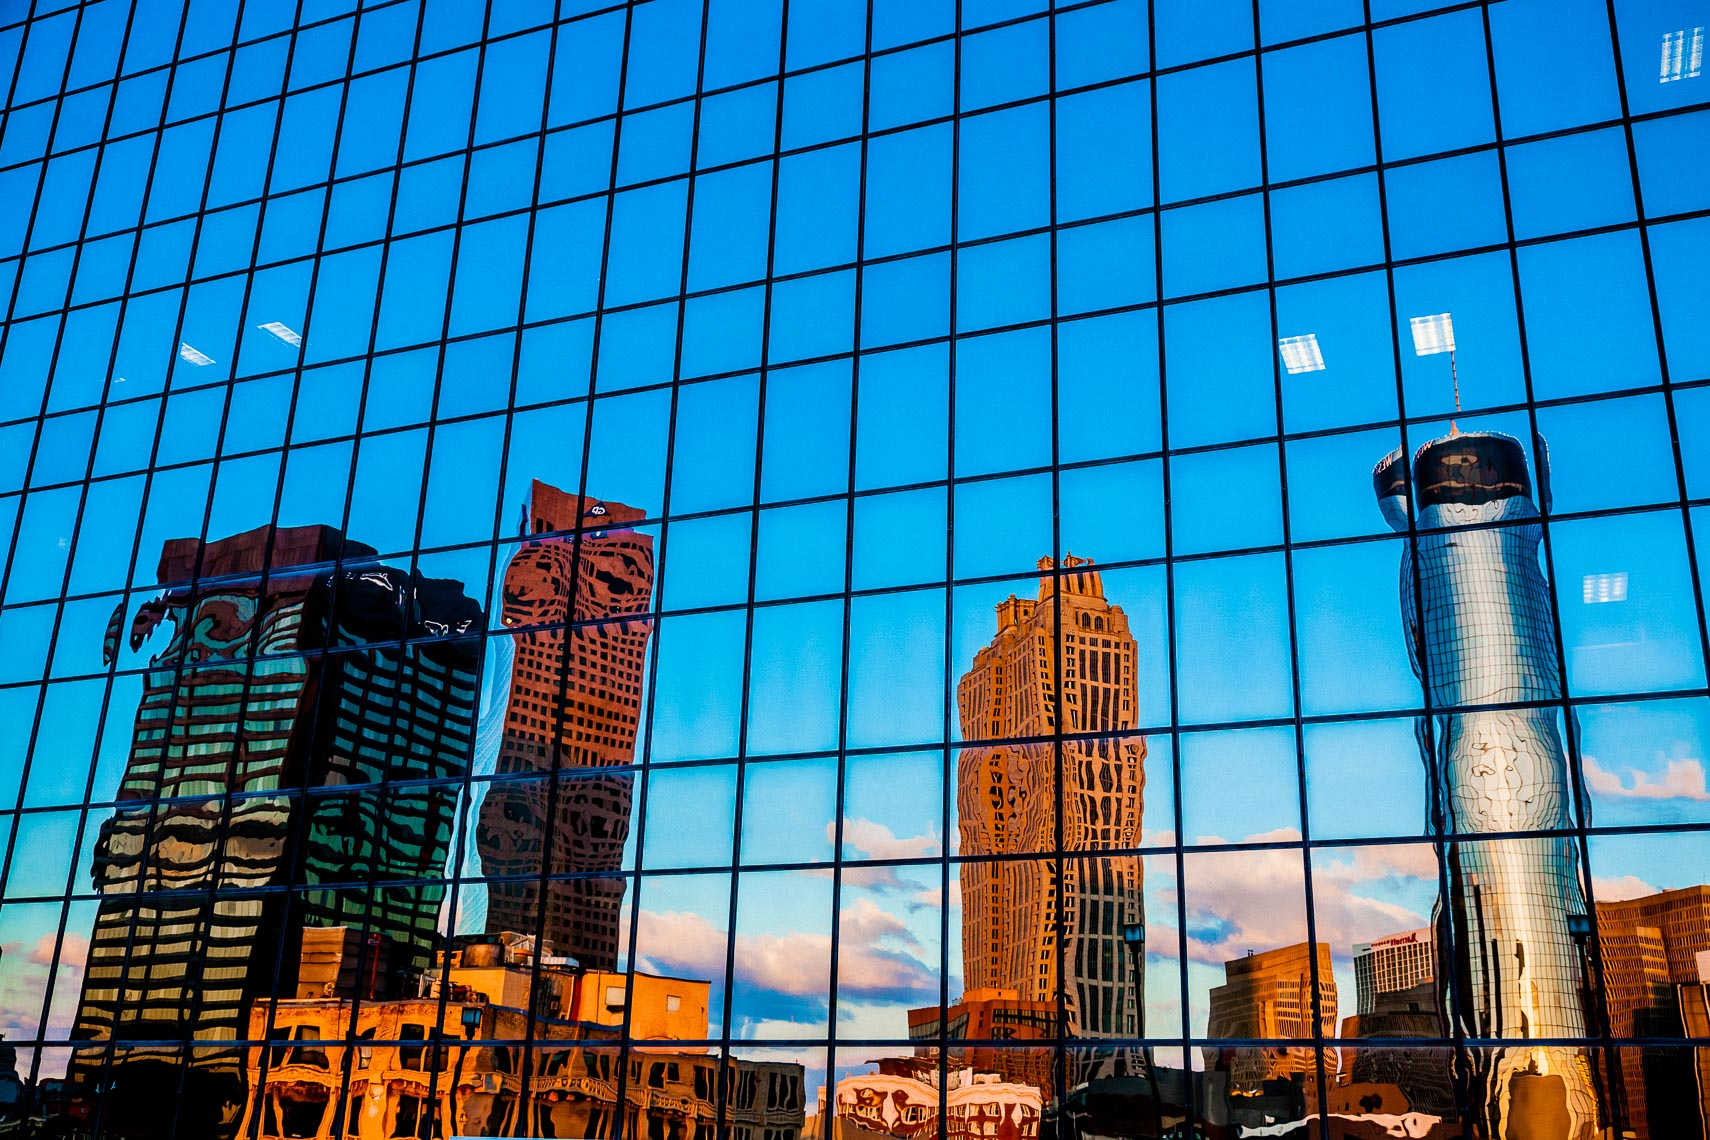 Photograph of Windows Atlanta